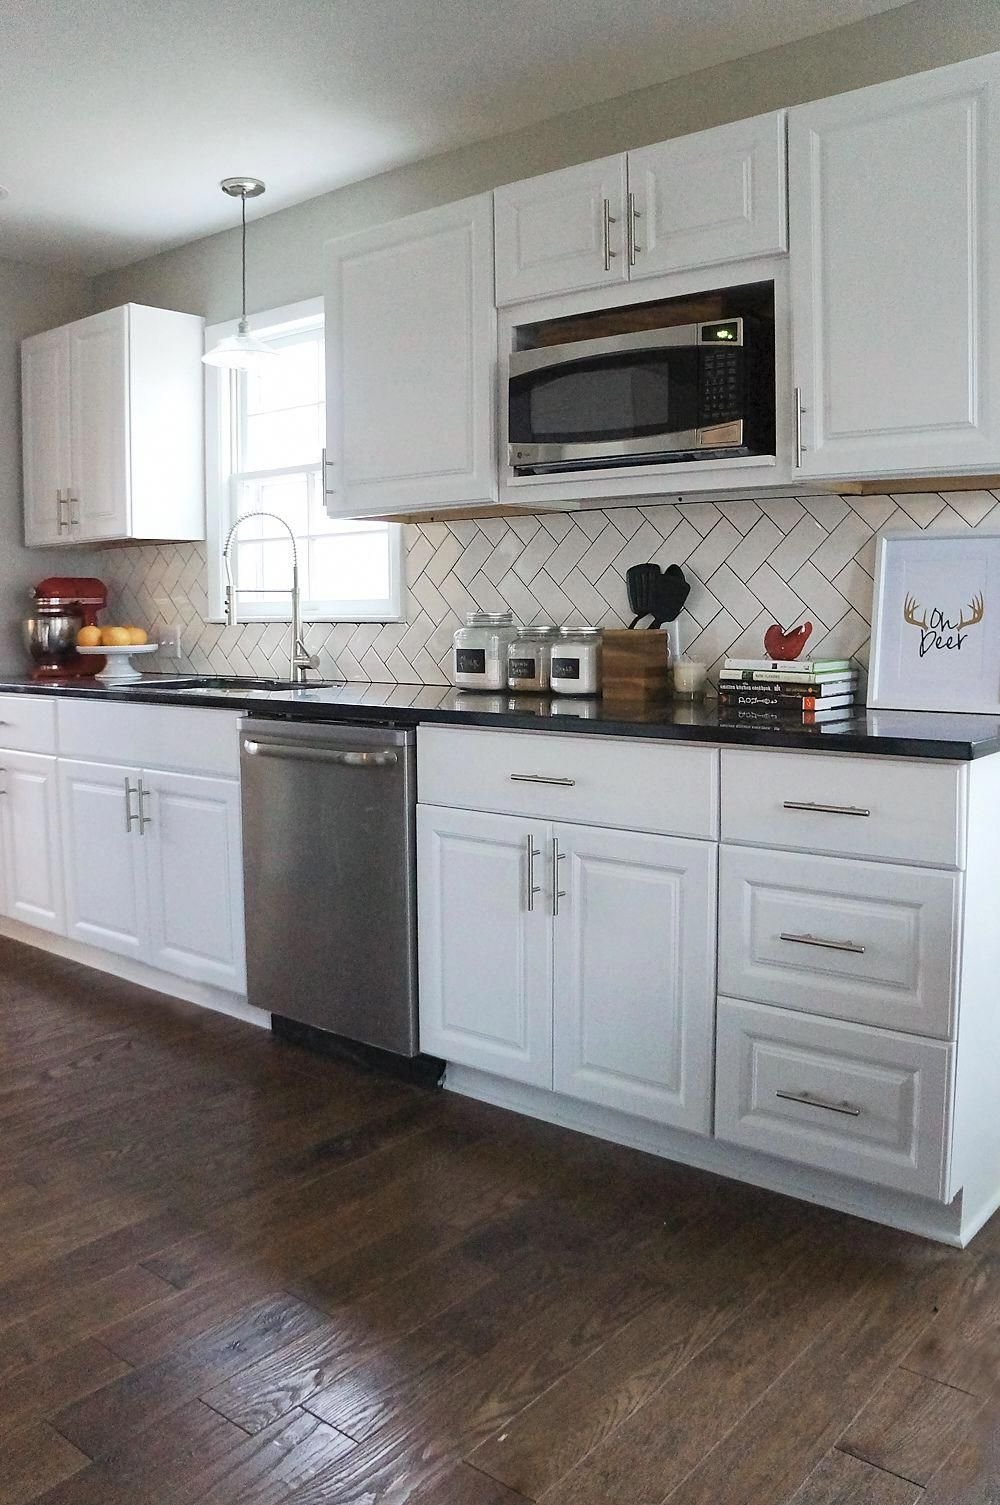 1960s Kitchen Remodel Before After: Before And After: A 1960s Kitchen Makeover